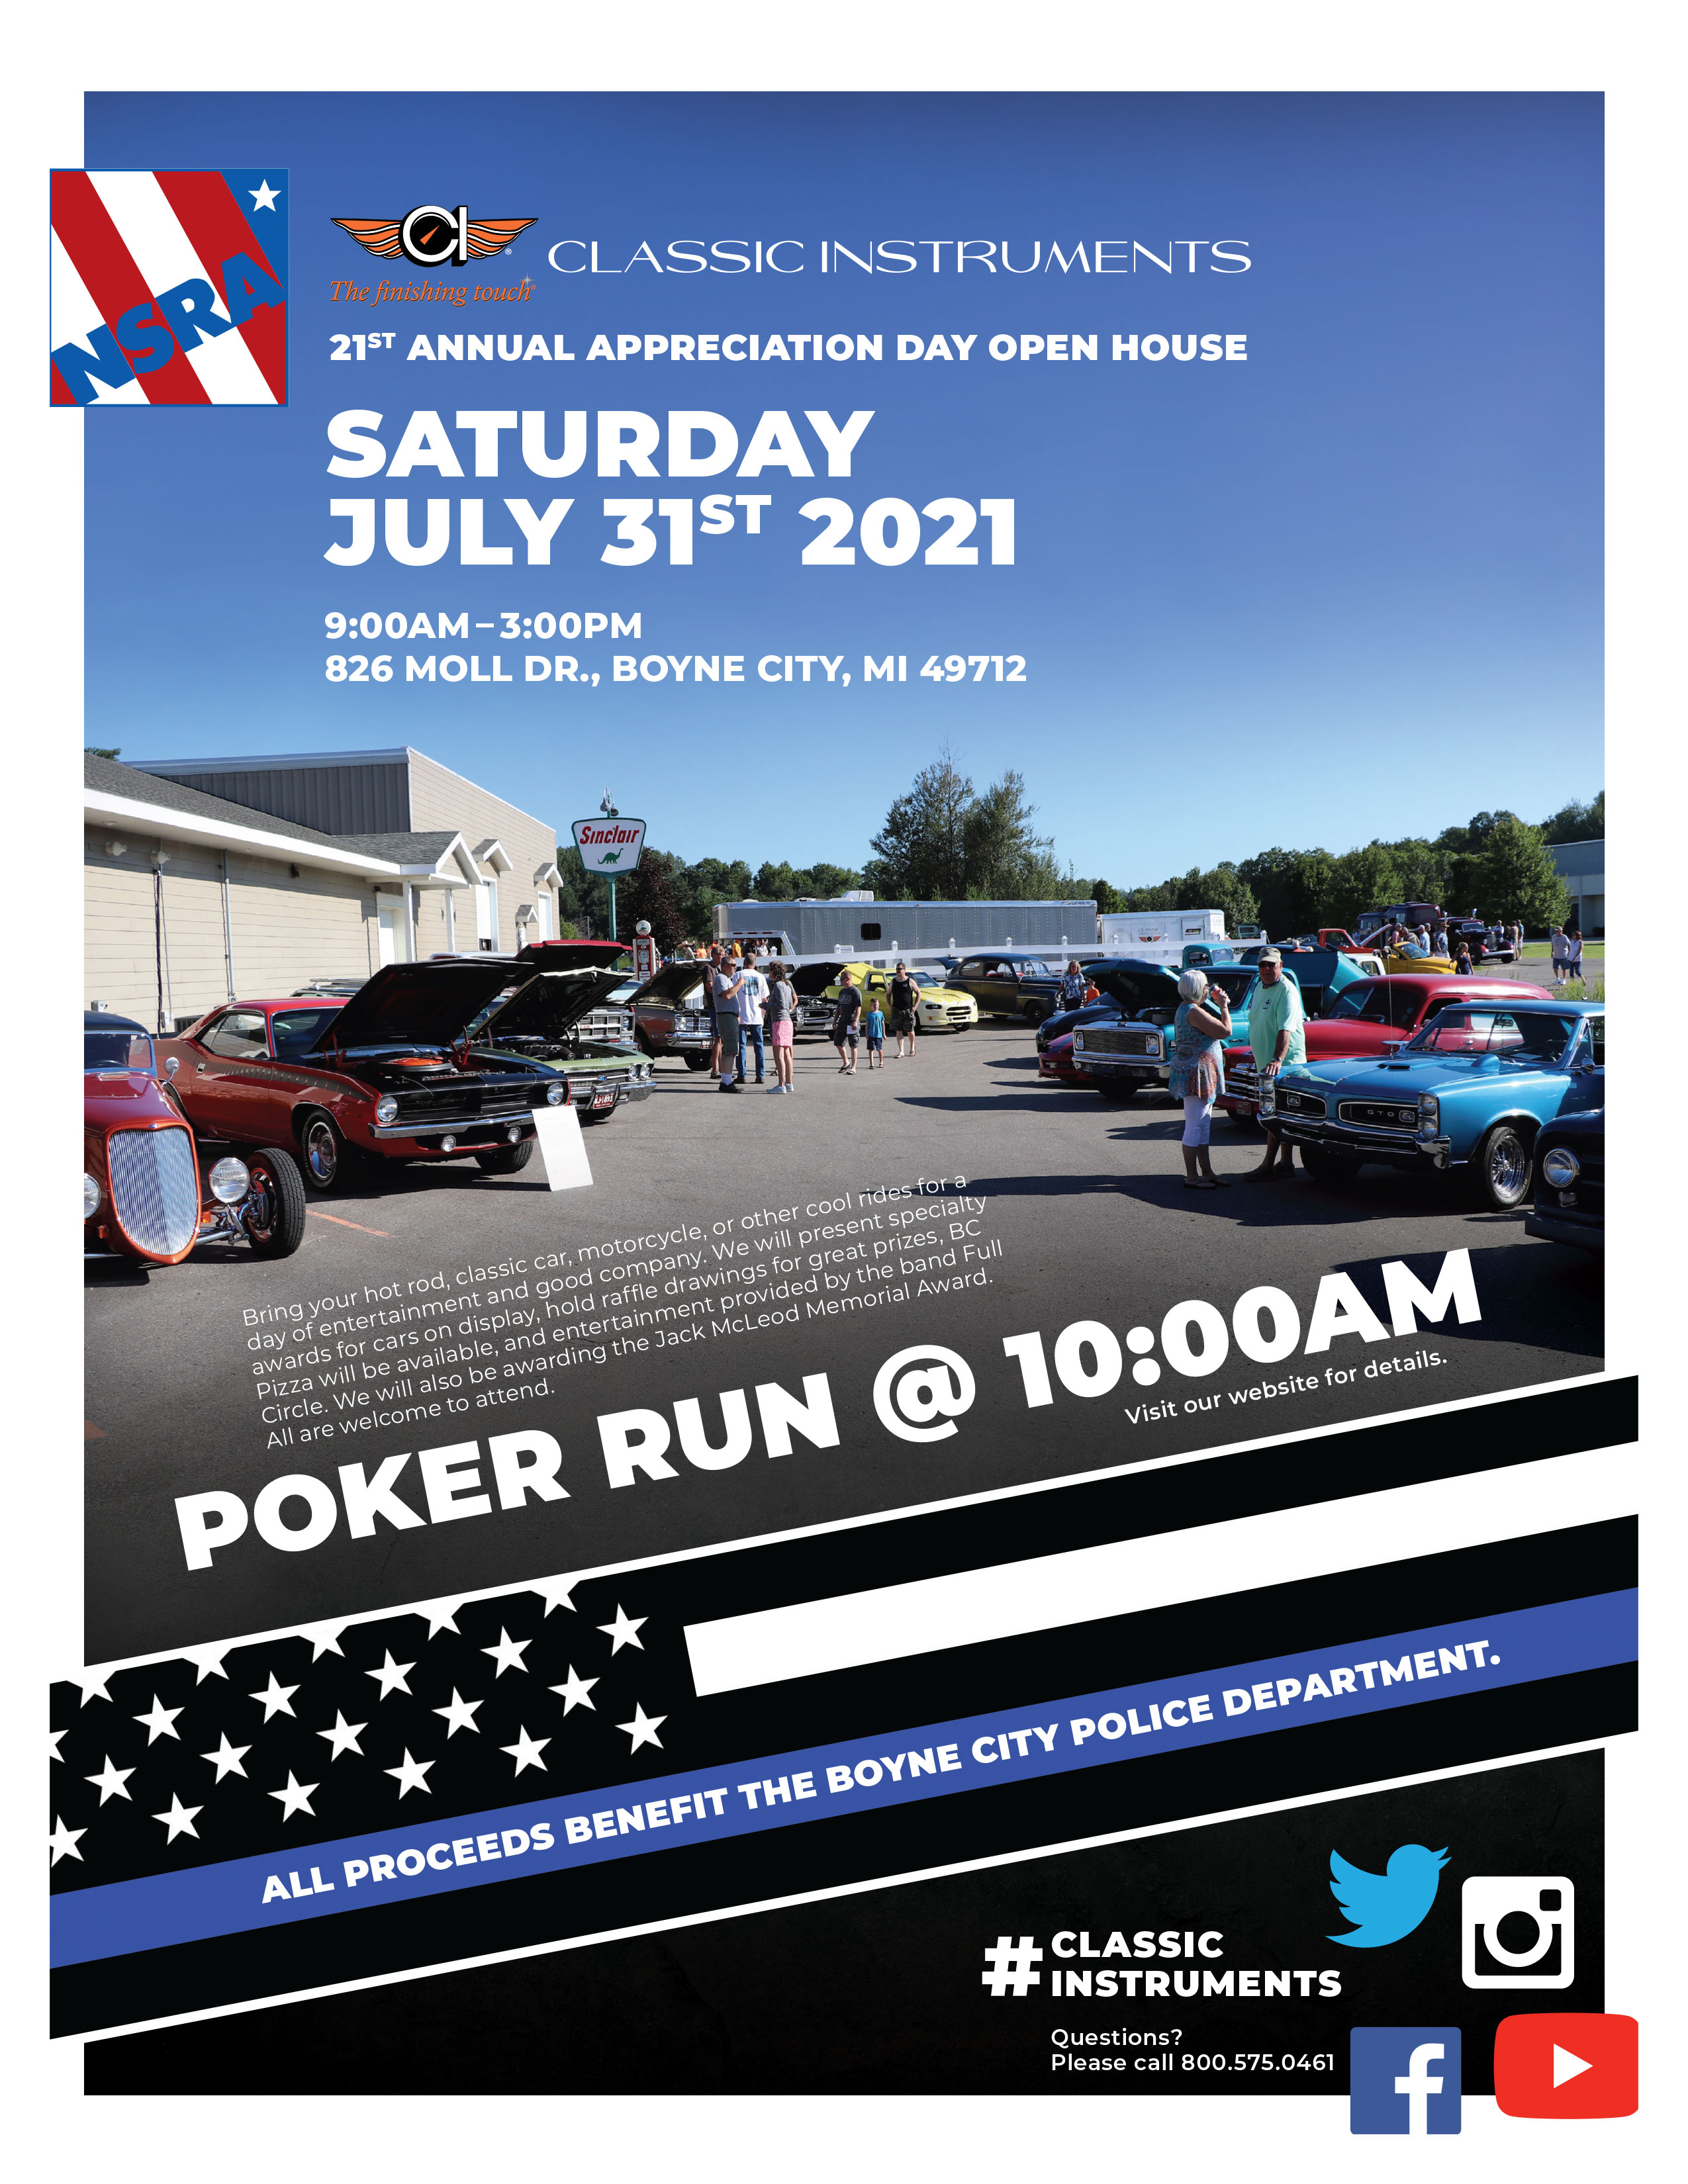 Everyone Is Welcome! Join Us For The Classic Instruments Open House And Poker Run July 31st!